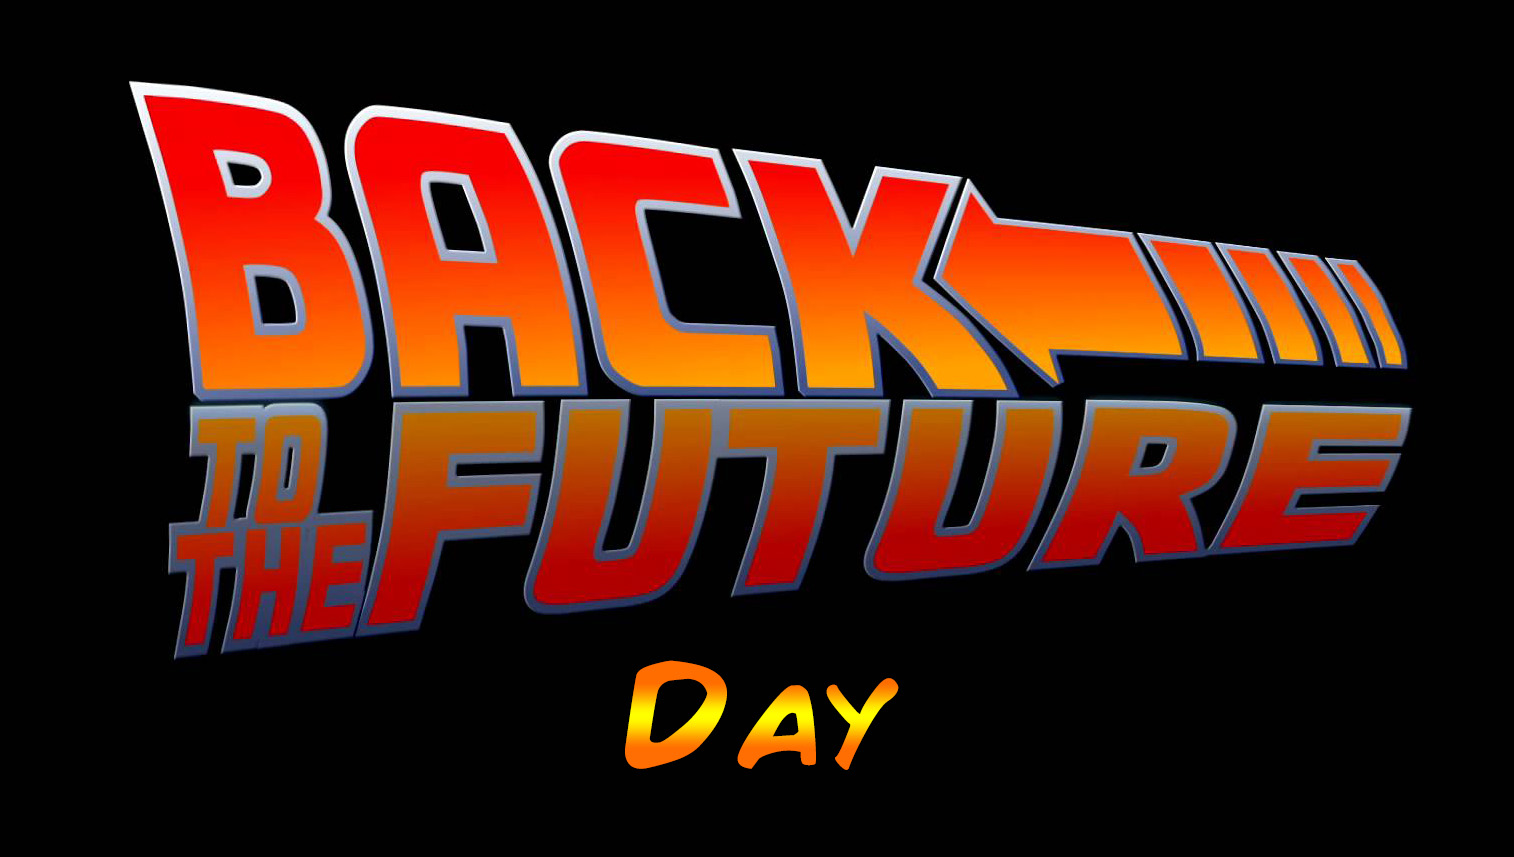 Happy quot back to the future quot day step inside for some goodies know